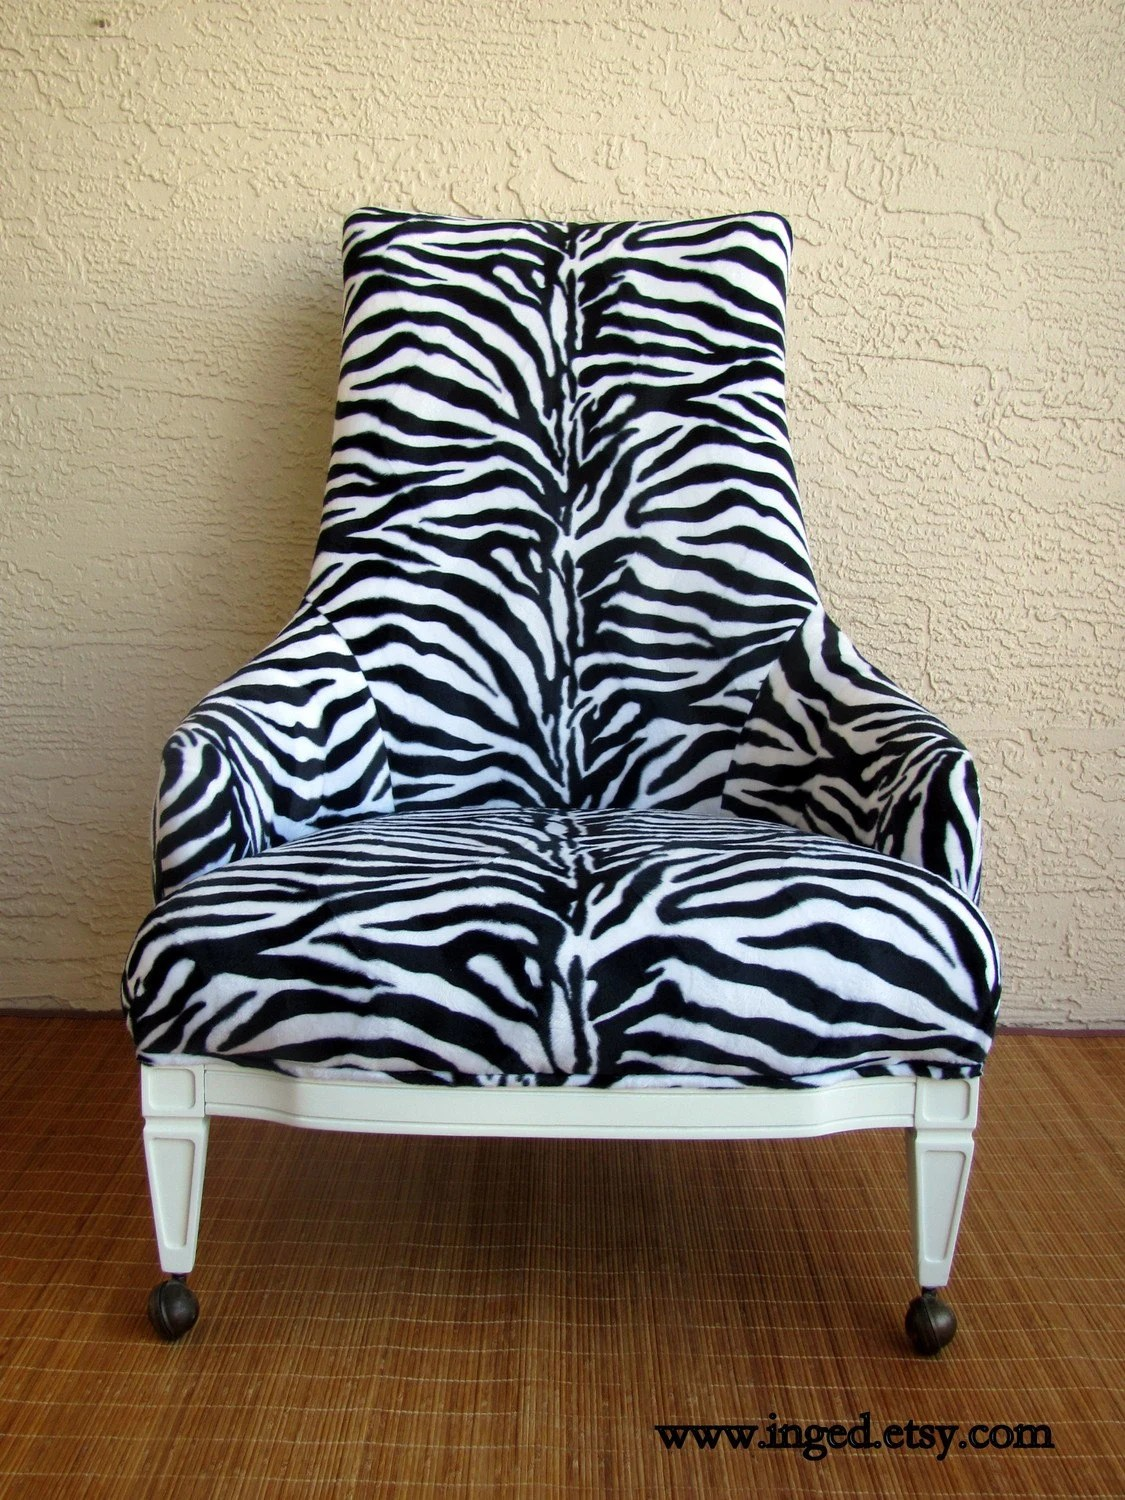 zebra print chairs for sale white metal folding garden chair the house decorating